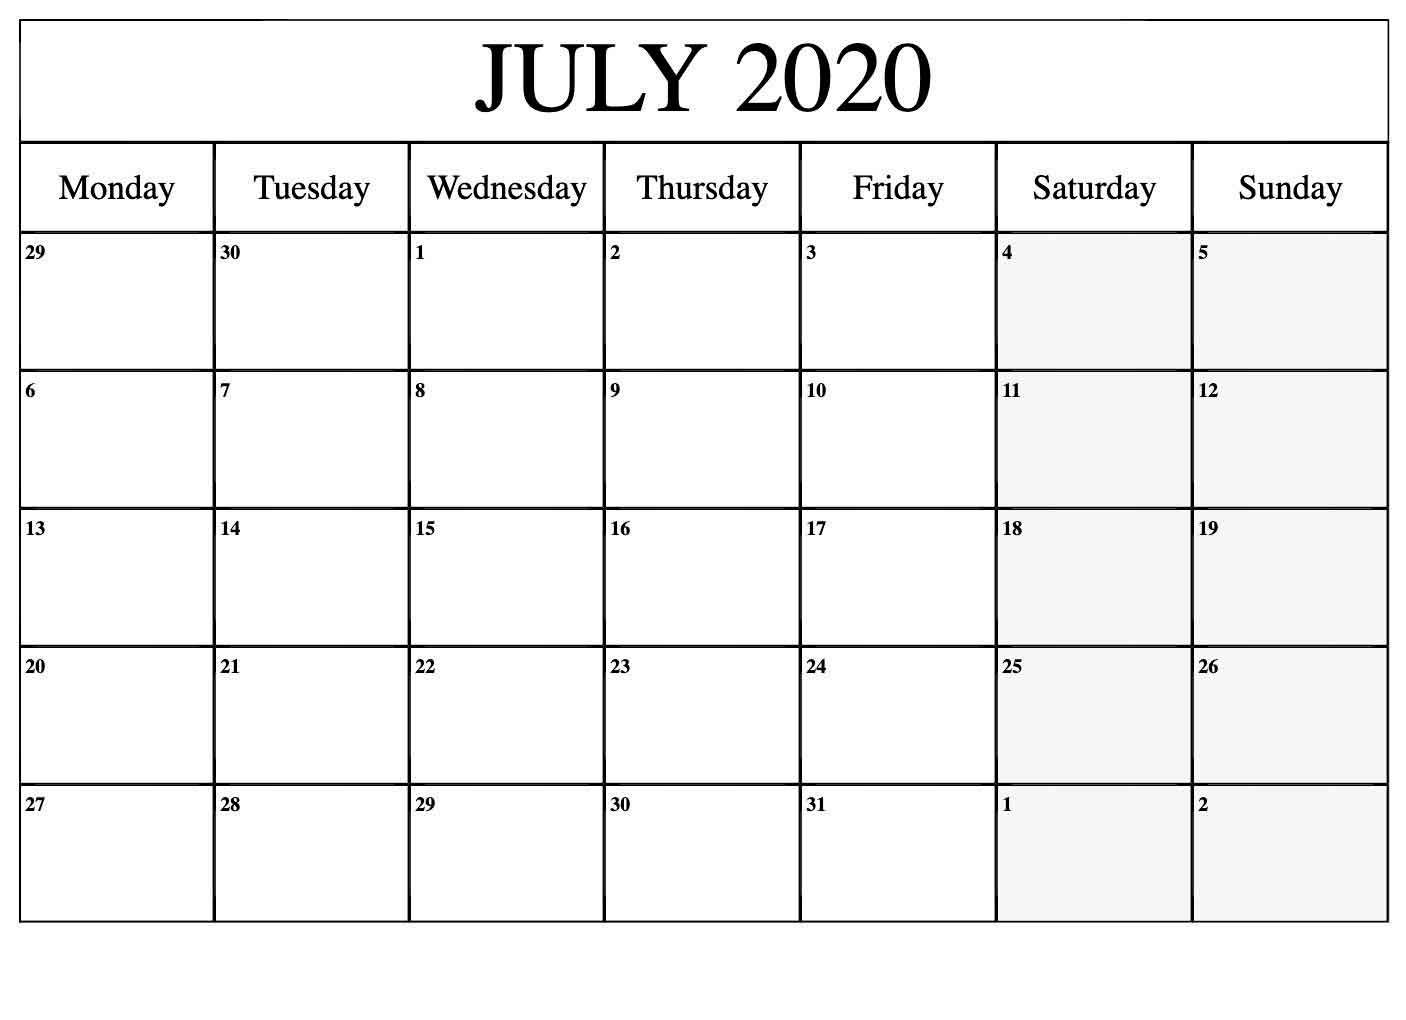 Free Printable Calendar July 2020 Excel Calendar. intended for Sunday To Saturday Calendar 2020 Printable